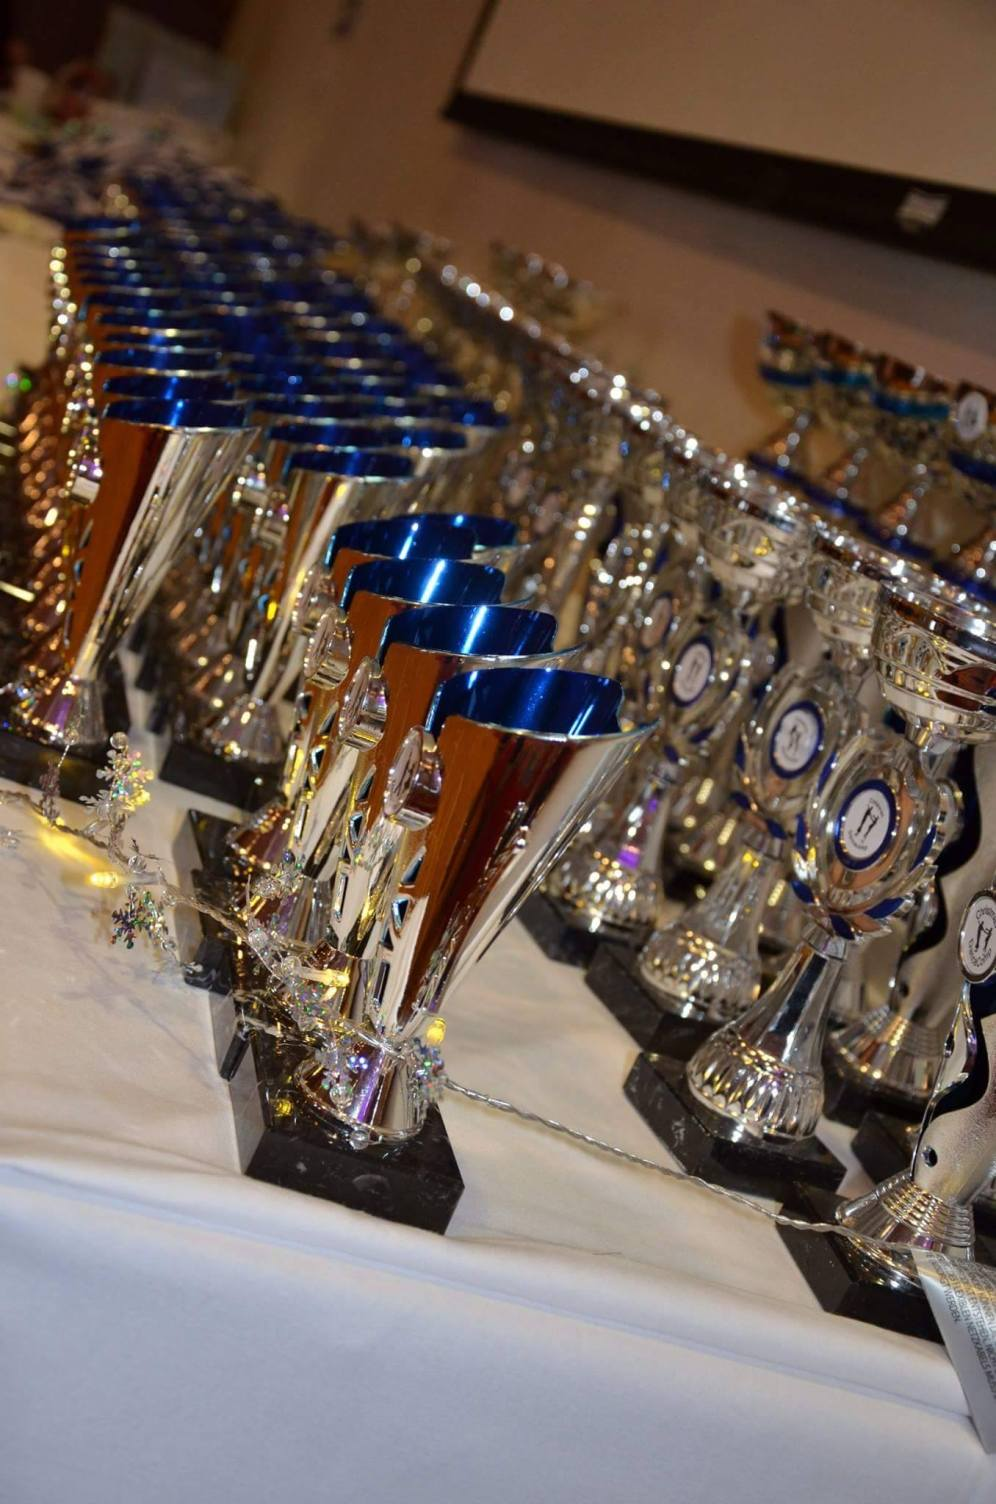 Trophies waiting for new owners !